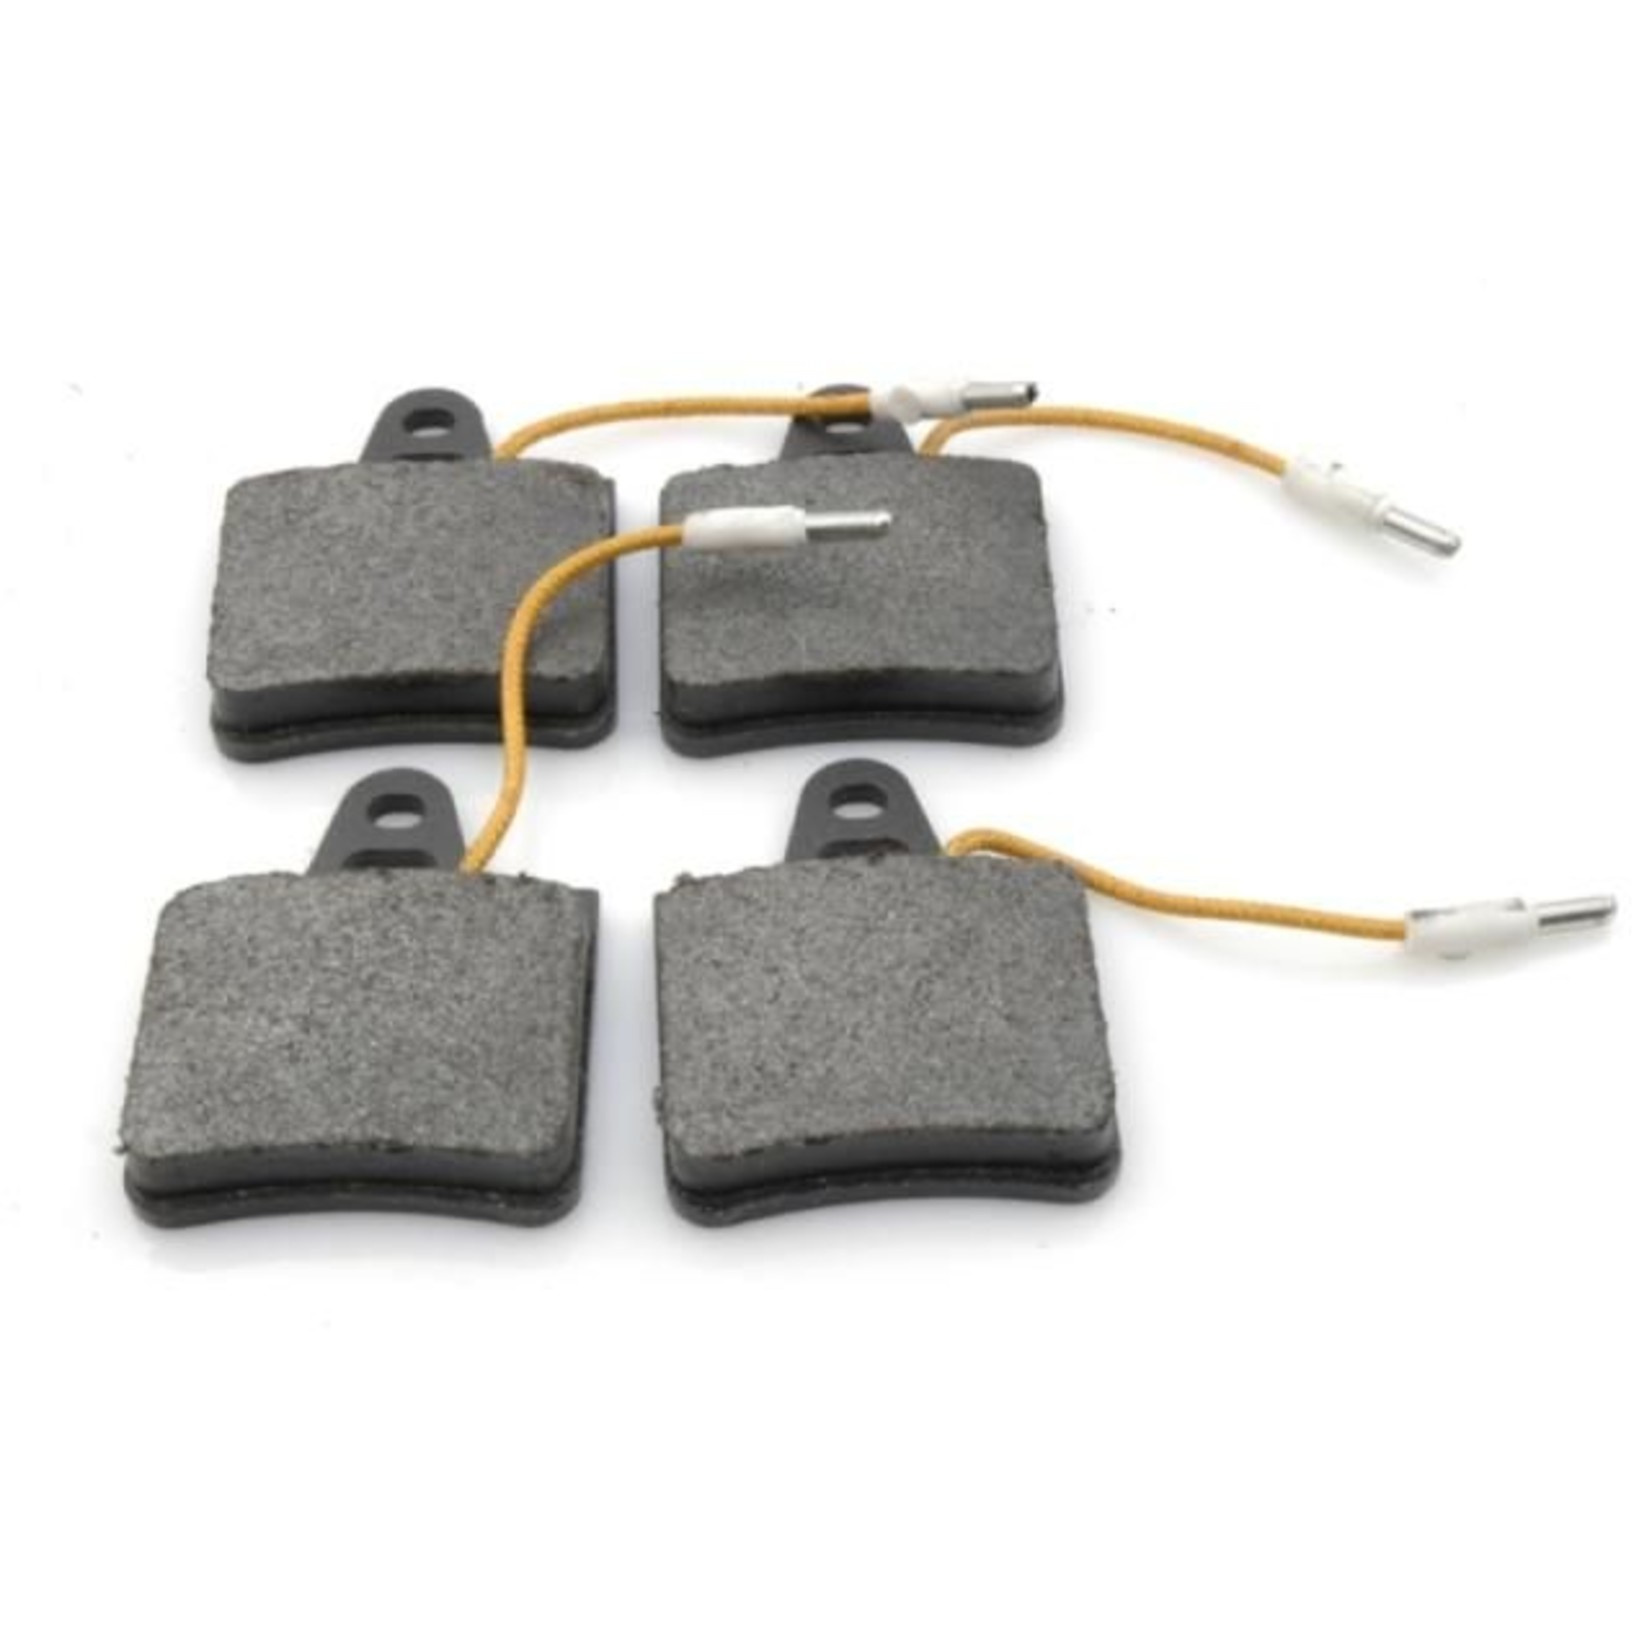 Rear brake pads with connection wire SM 72- Nr Org: 5422680